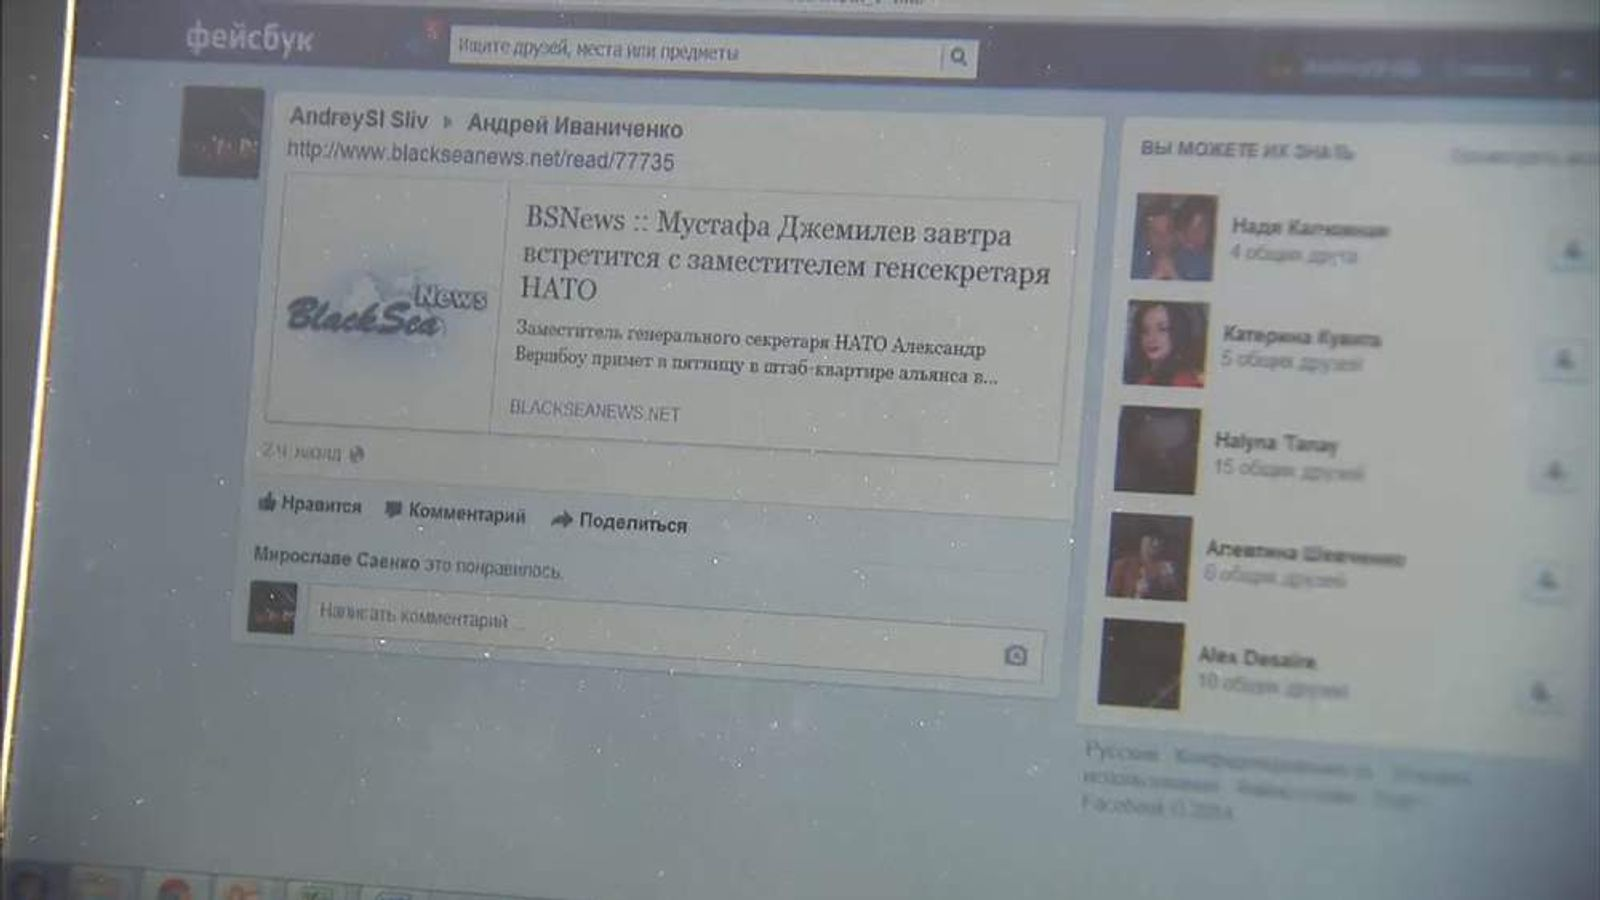 A Facebook page seeking support for the Ukrainian army